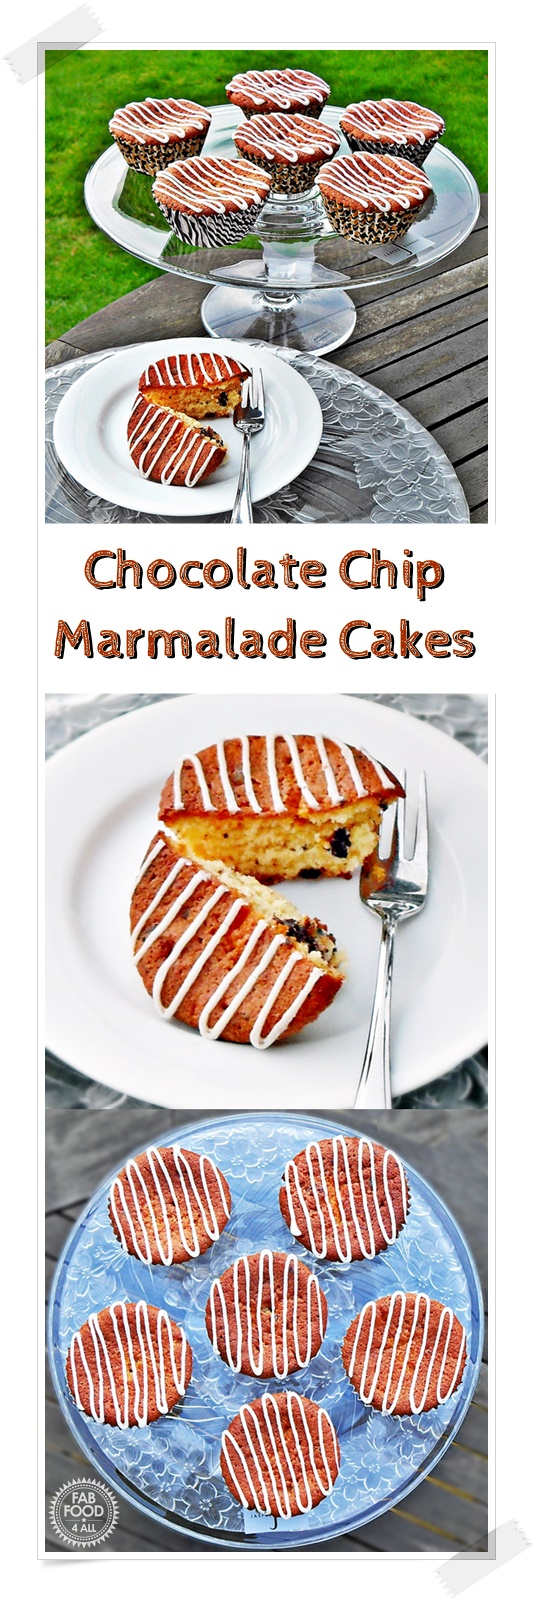 Chocolate Chip Marmalade Cakes - Fab Food 4 All #cupcakes #marmalade #chocolatechip #baking #cake